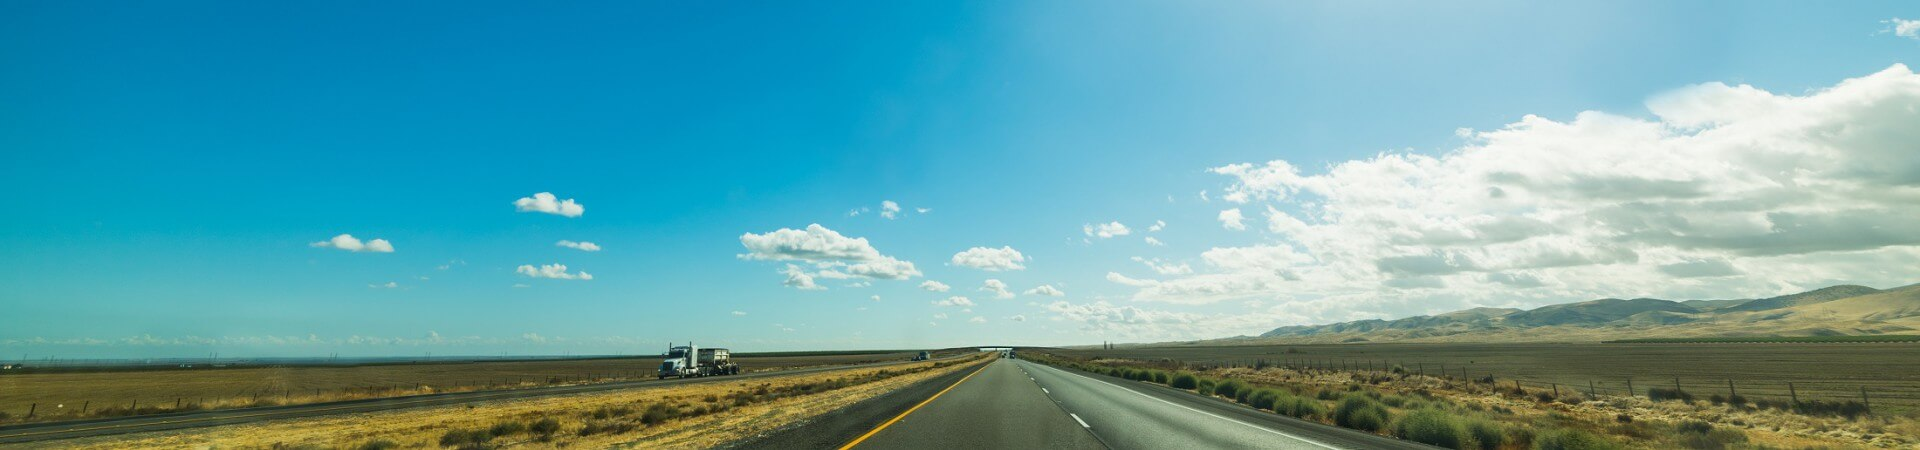 Open highway surrounded by fields with a bright blue sky above